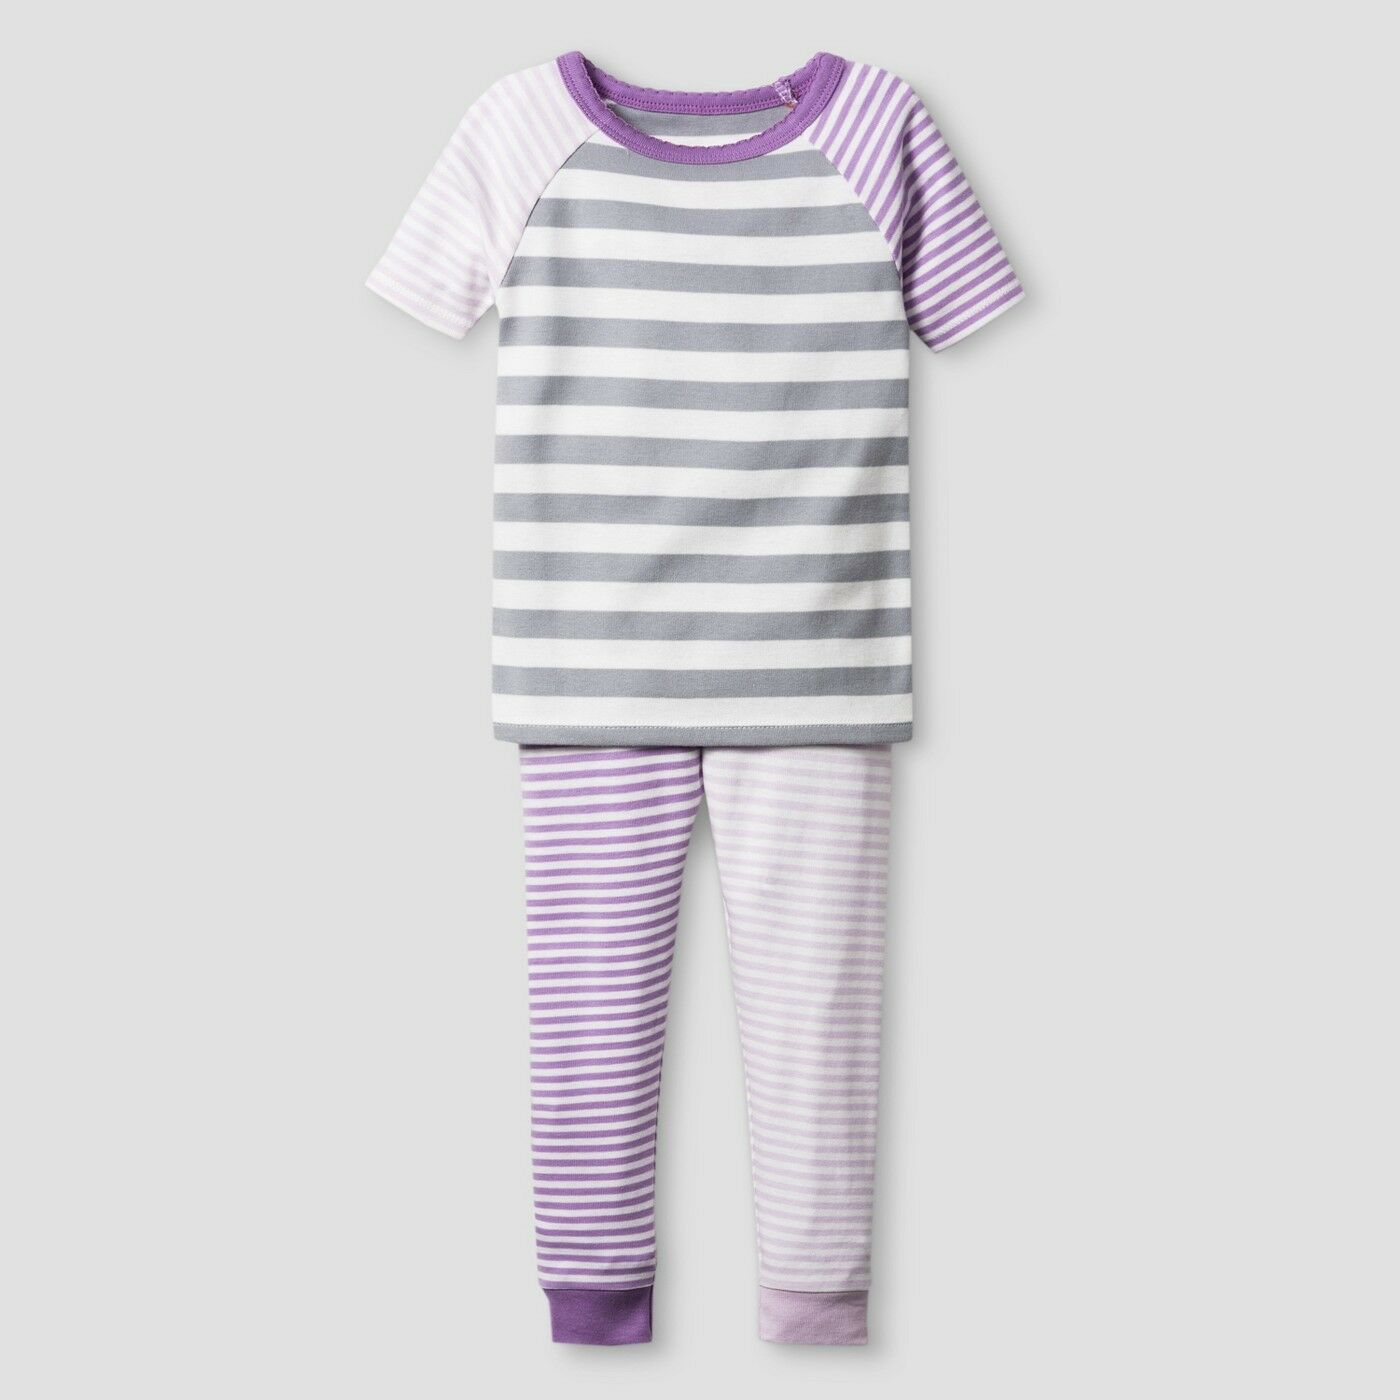 Toddler Girls Organic Cotton 2-Piece Pajama Set – Cat & Jack – Lilac Stripe 18M Baby